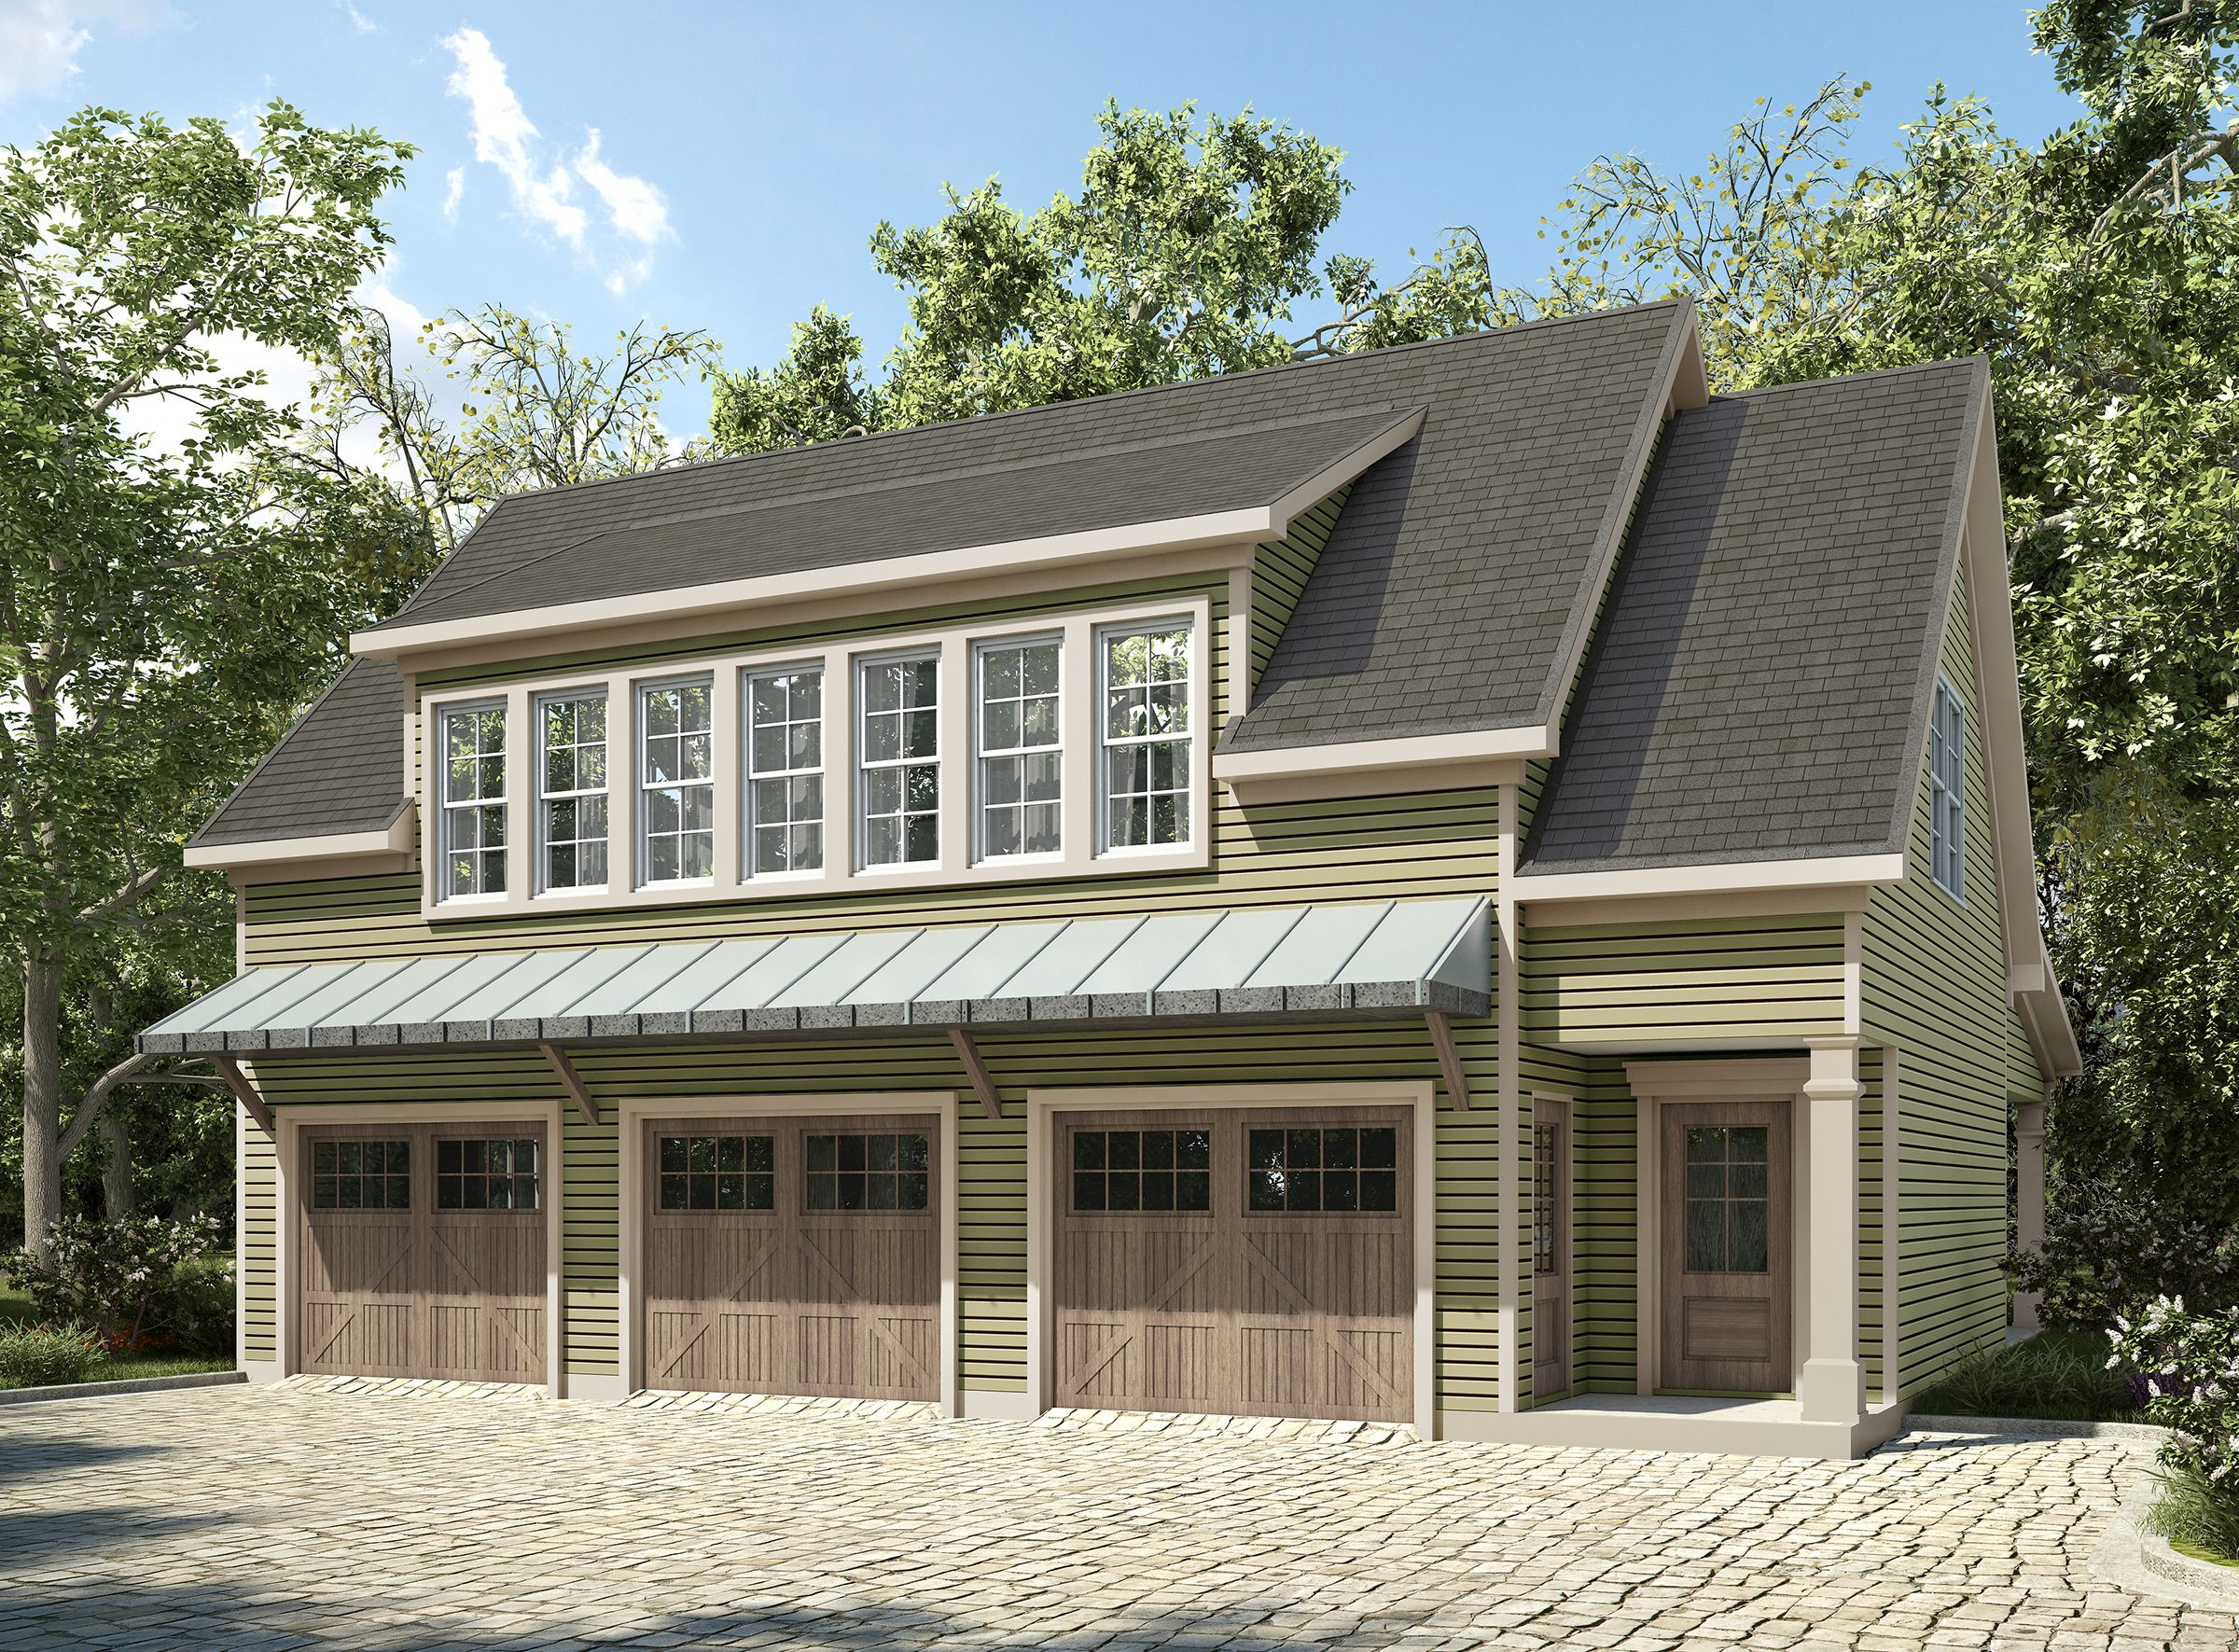 Plan 36057dk 3 bay carriage house plan with shed roof in for House plan with garage